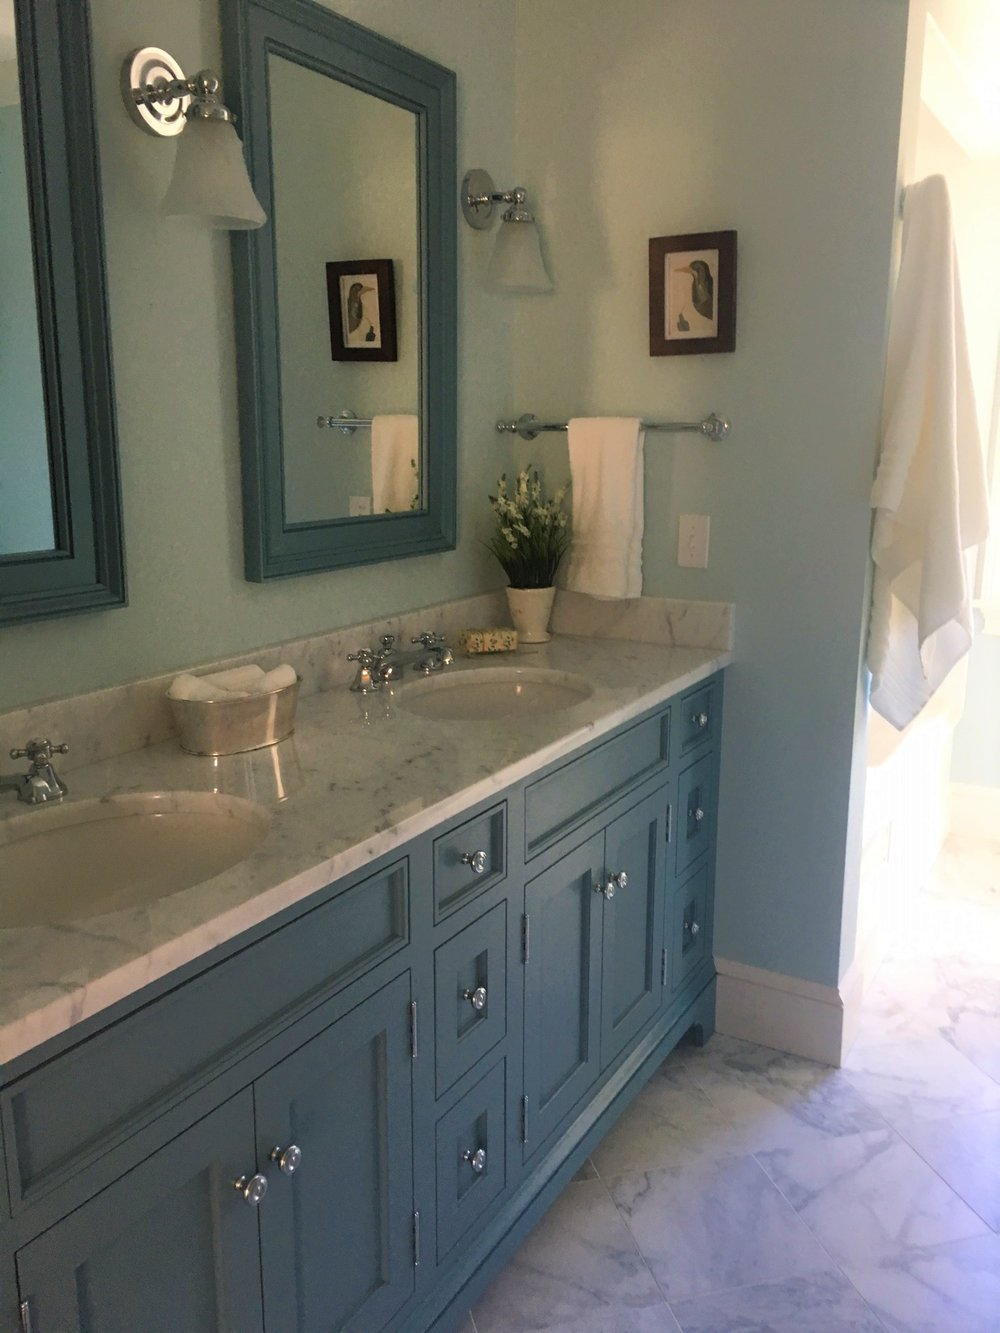 Benjamin Moore's  Province Blue on the vanity is a nice compliment to Ben Moore's Summer Shower on the walls.  These colors, along with the marble floor and vanity top help to create this relaxing bathroom.